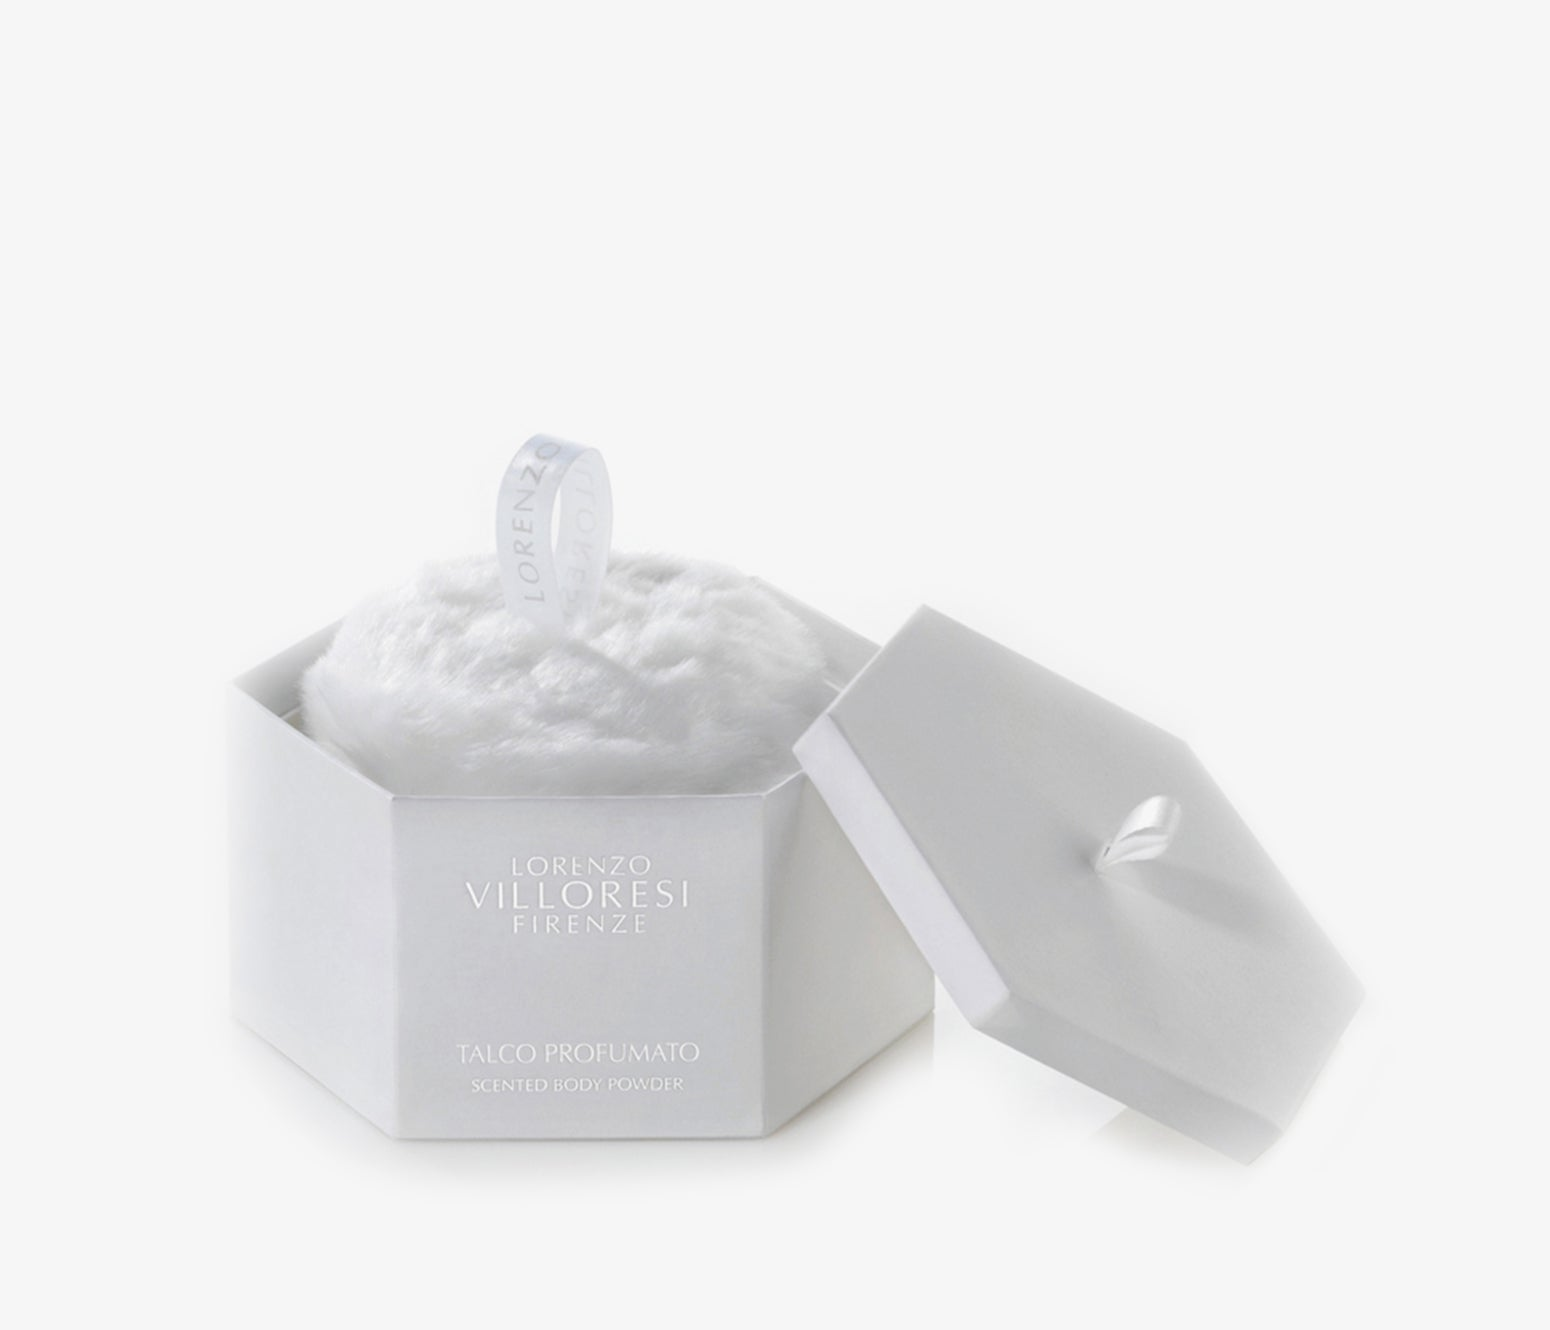 Lorenzo Villoresi - Teint de Neige Body Powder